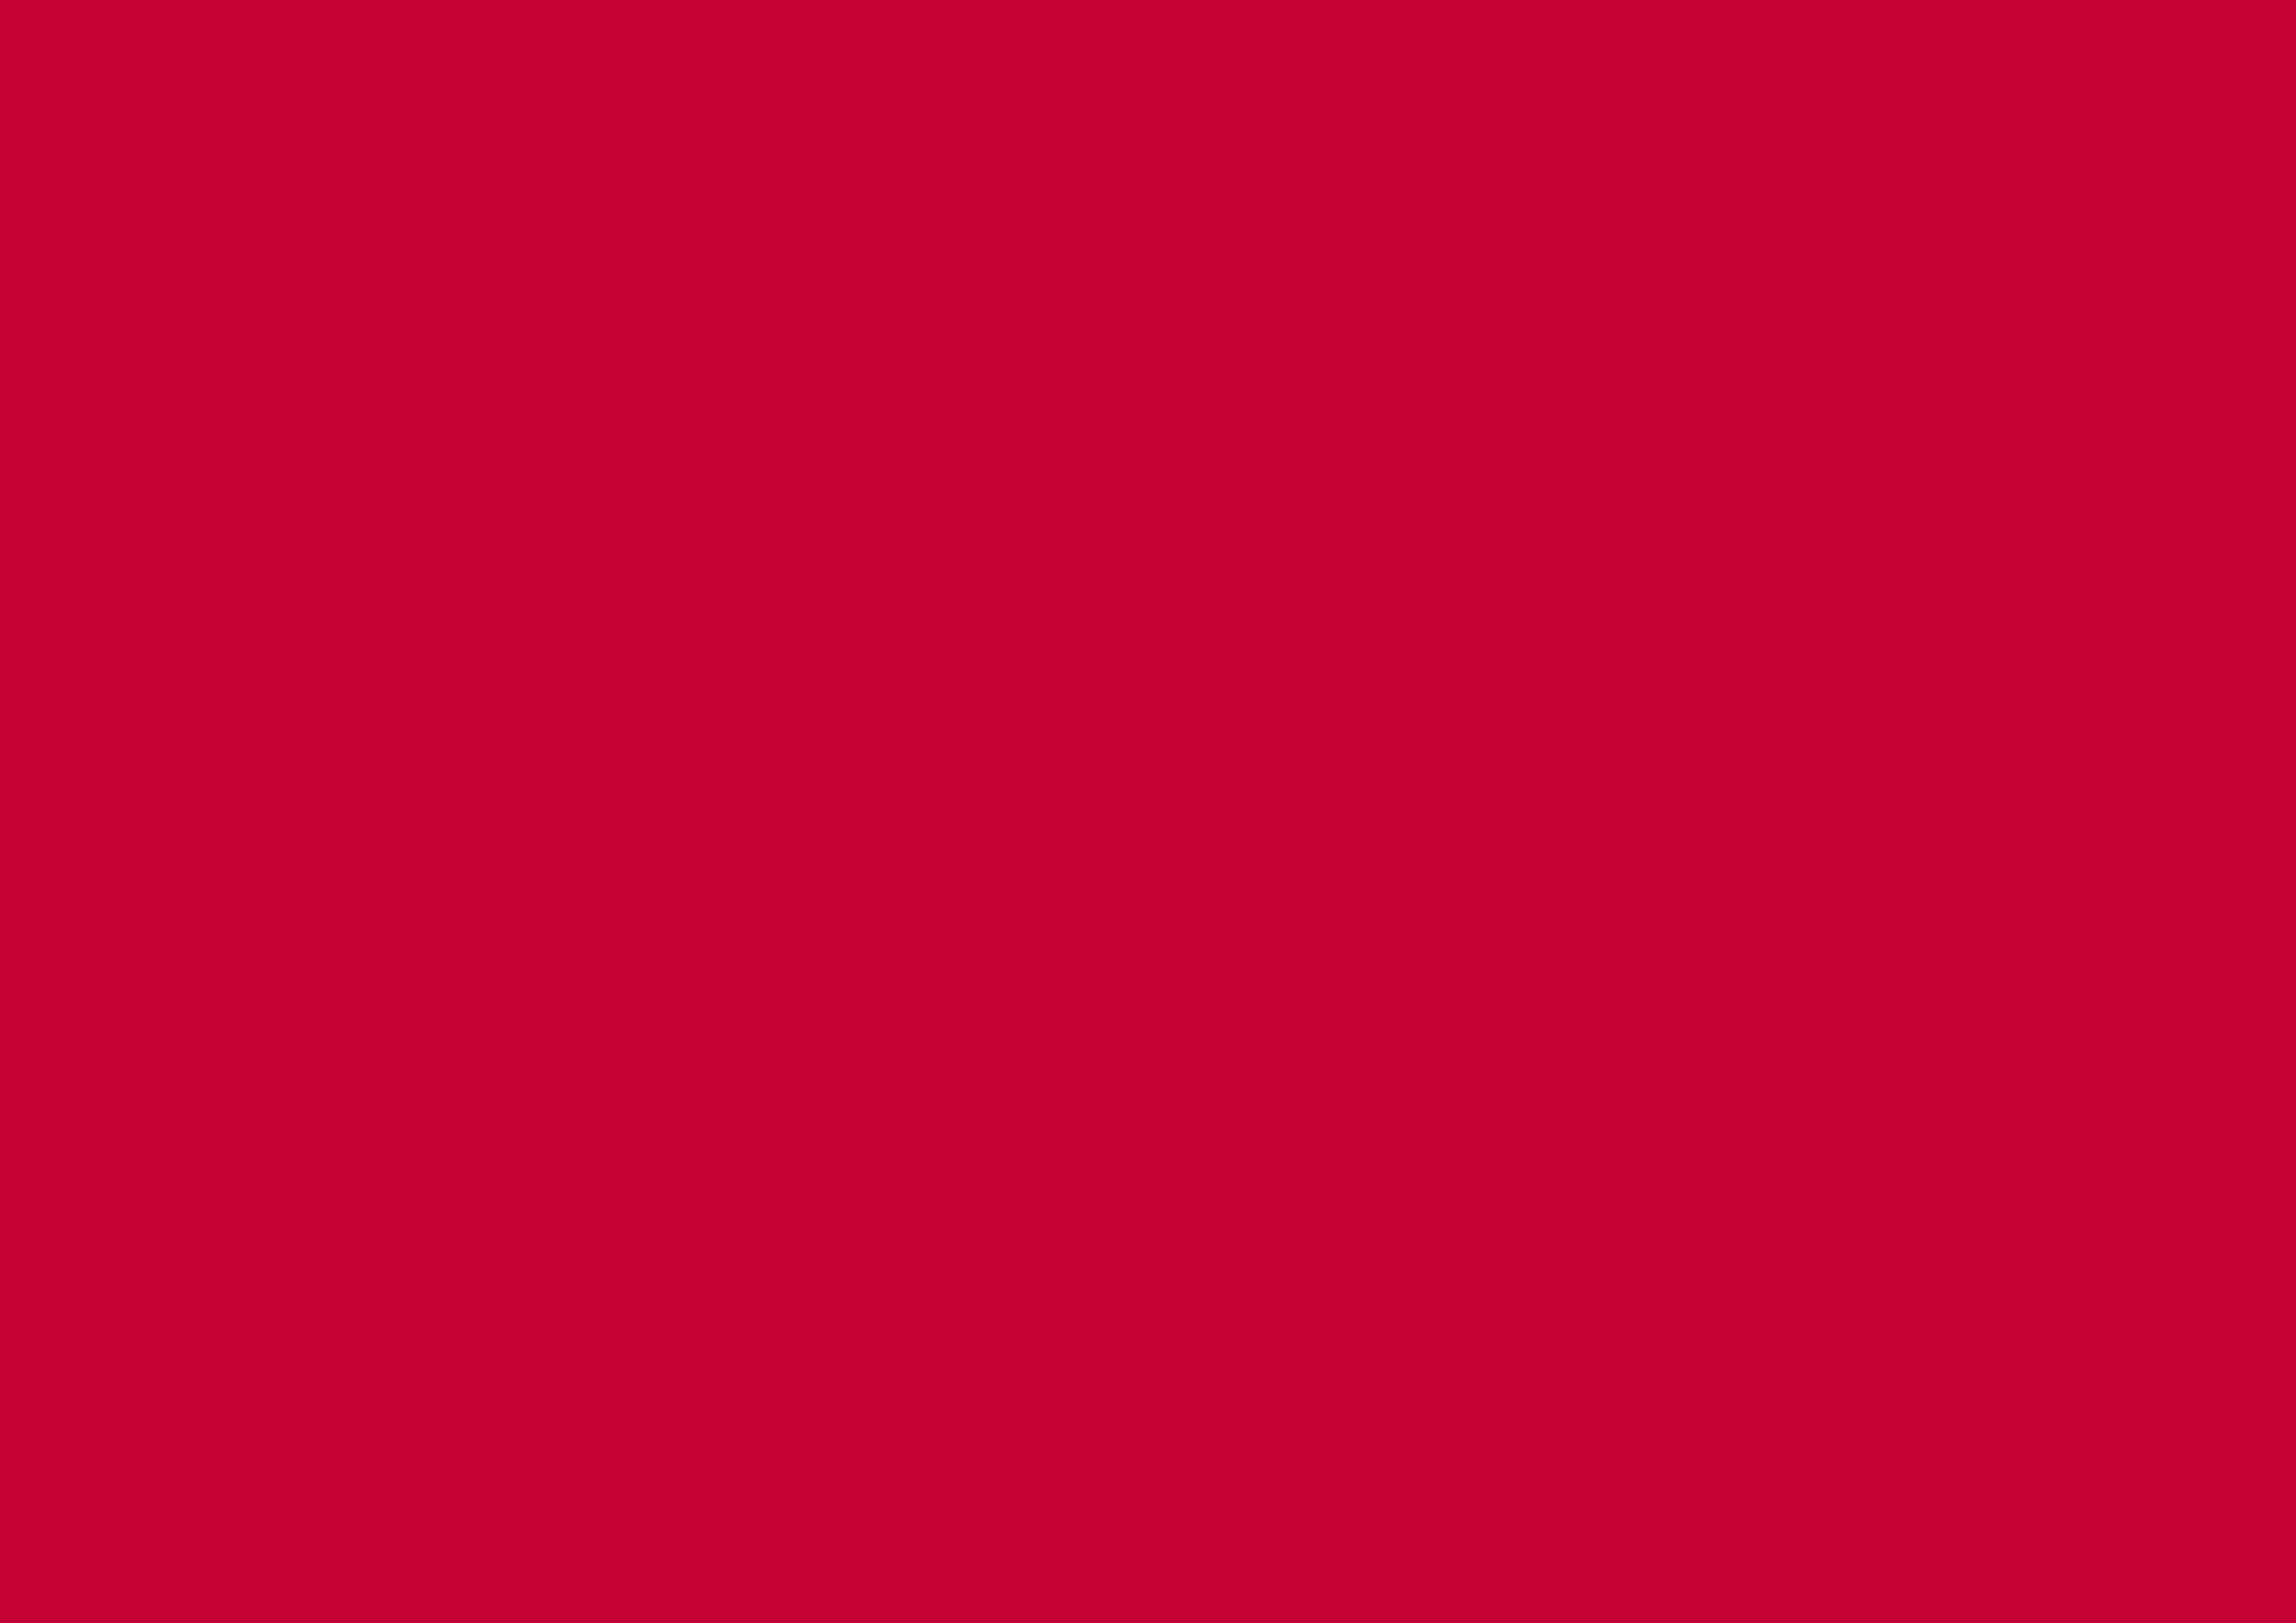 3508x2480 Red NCS Solid Color Background